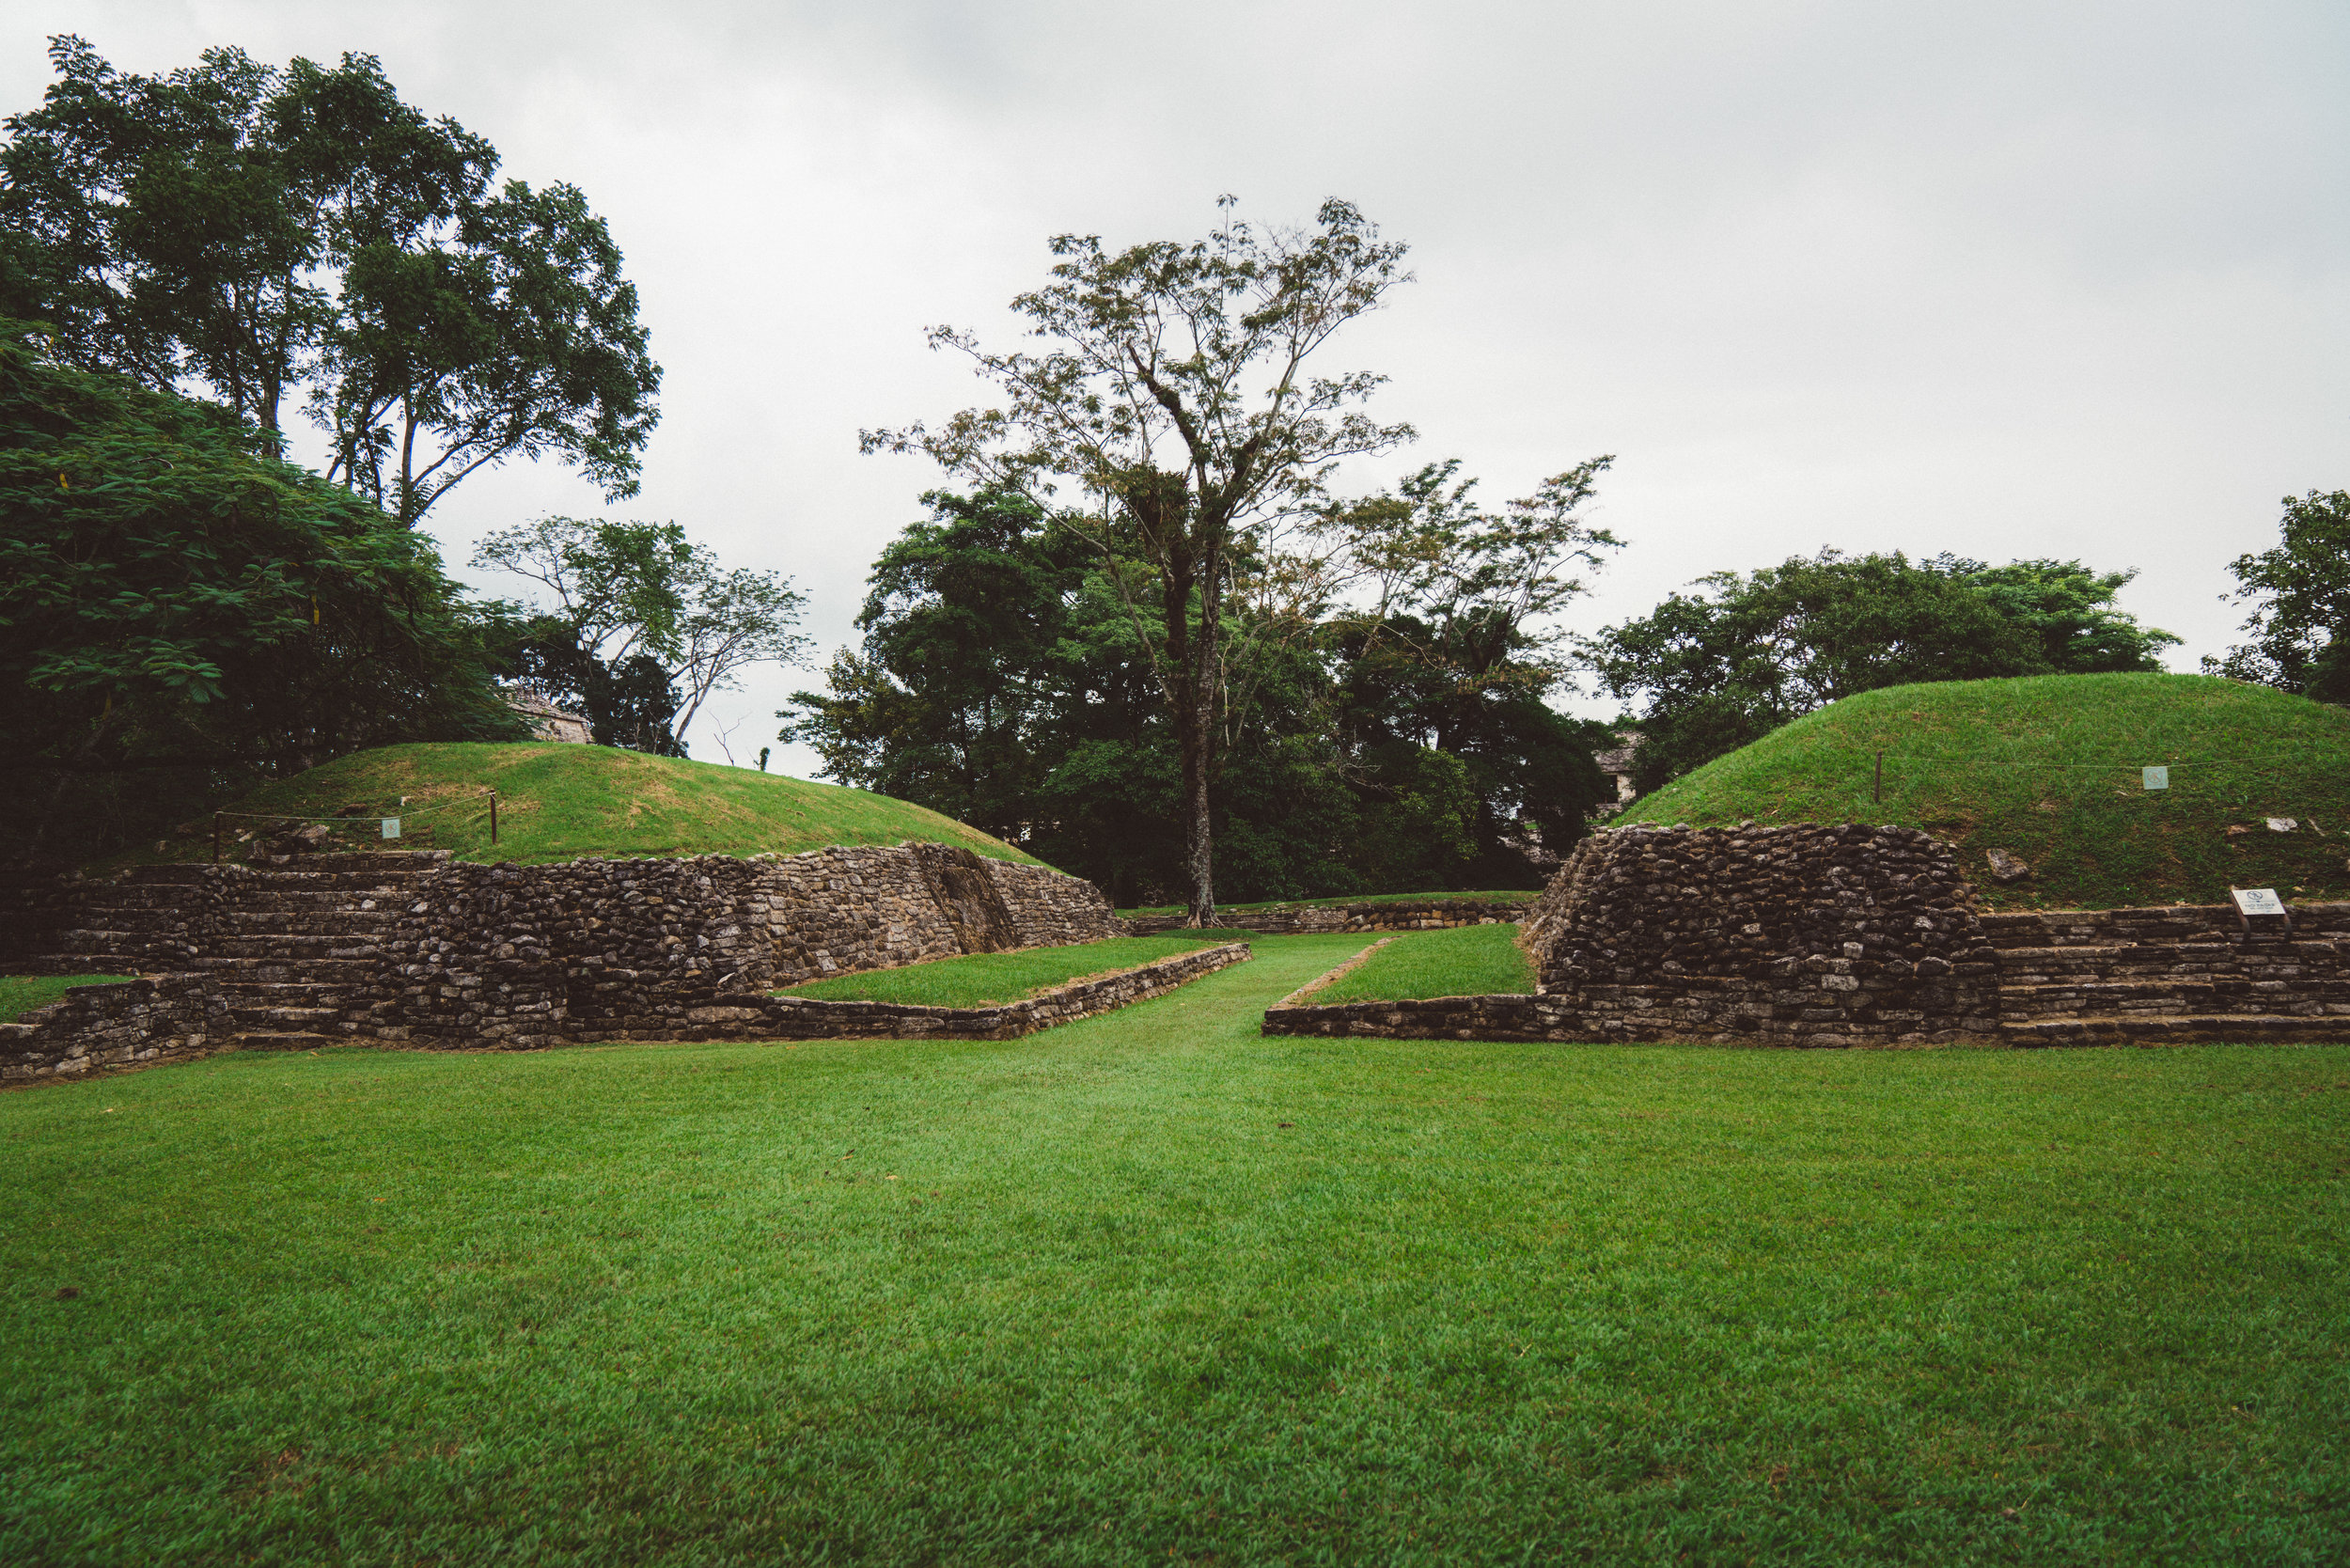 The ancient ball courts.